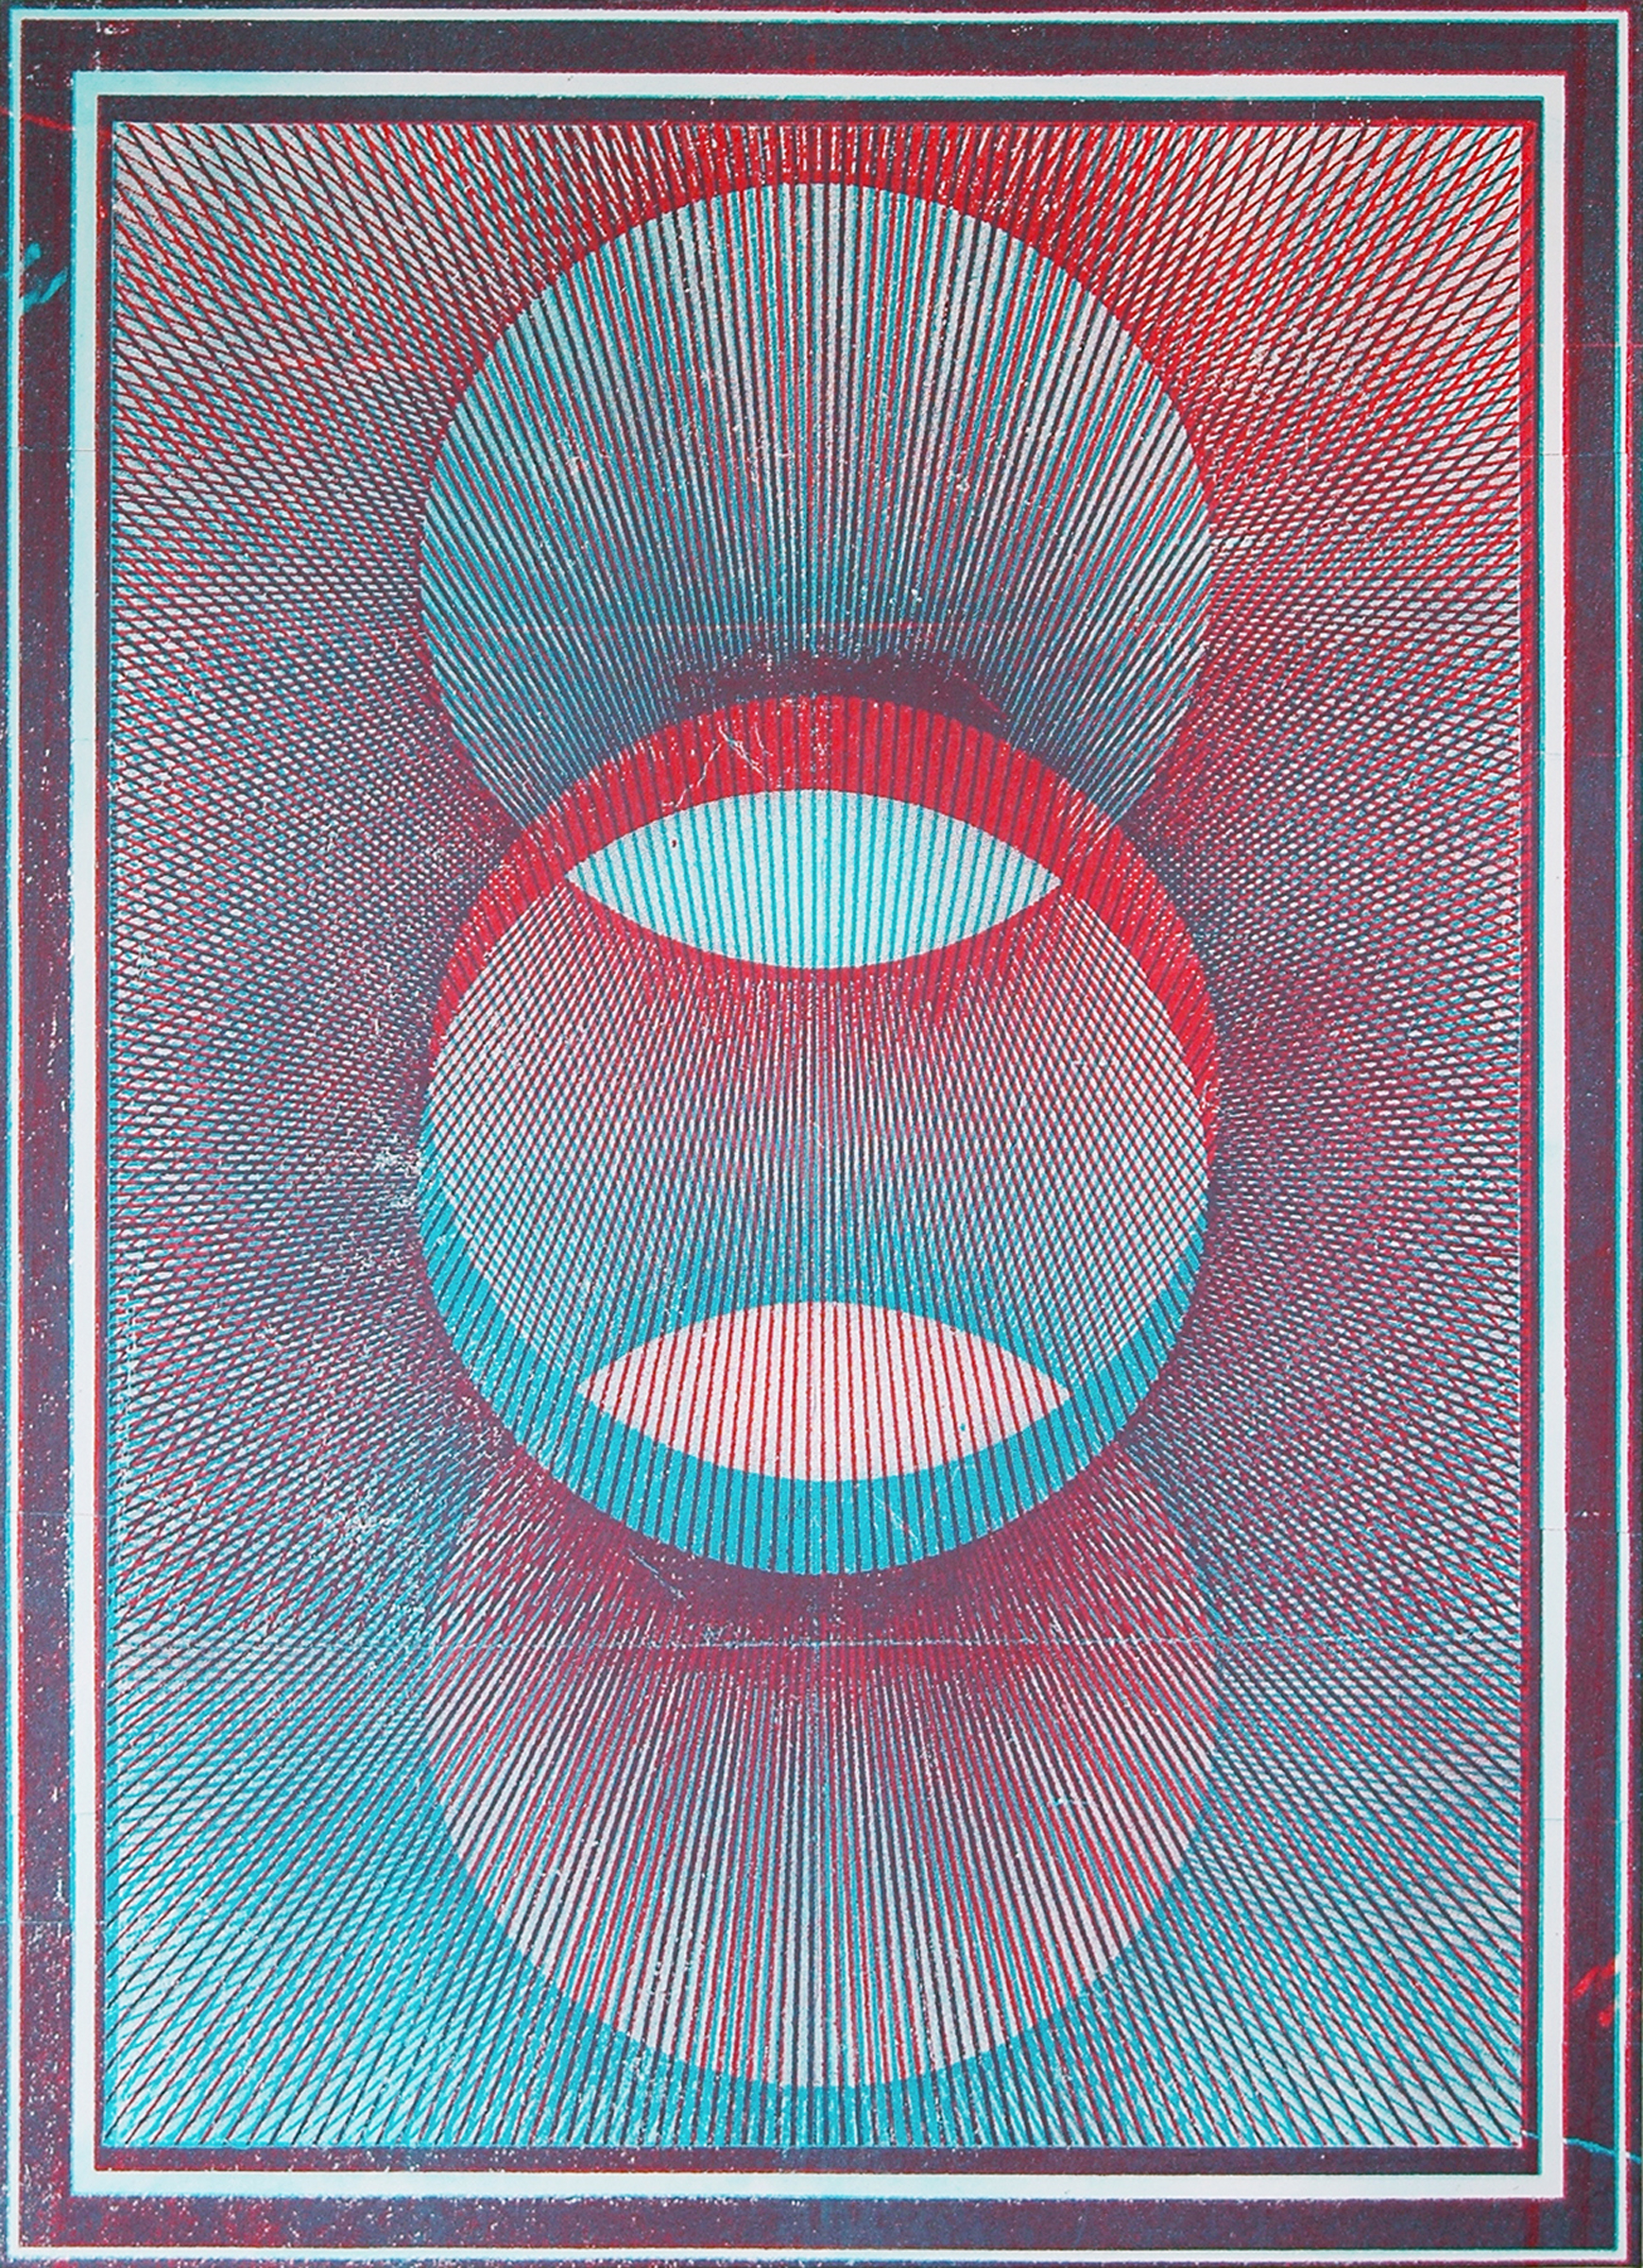 """GWENAËL RATTKE   Projections II (red & blue) , 2012, acrylic silkscreen on canvas with hand working, 49"""" x 35.5"""""""